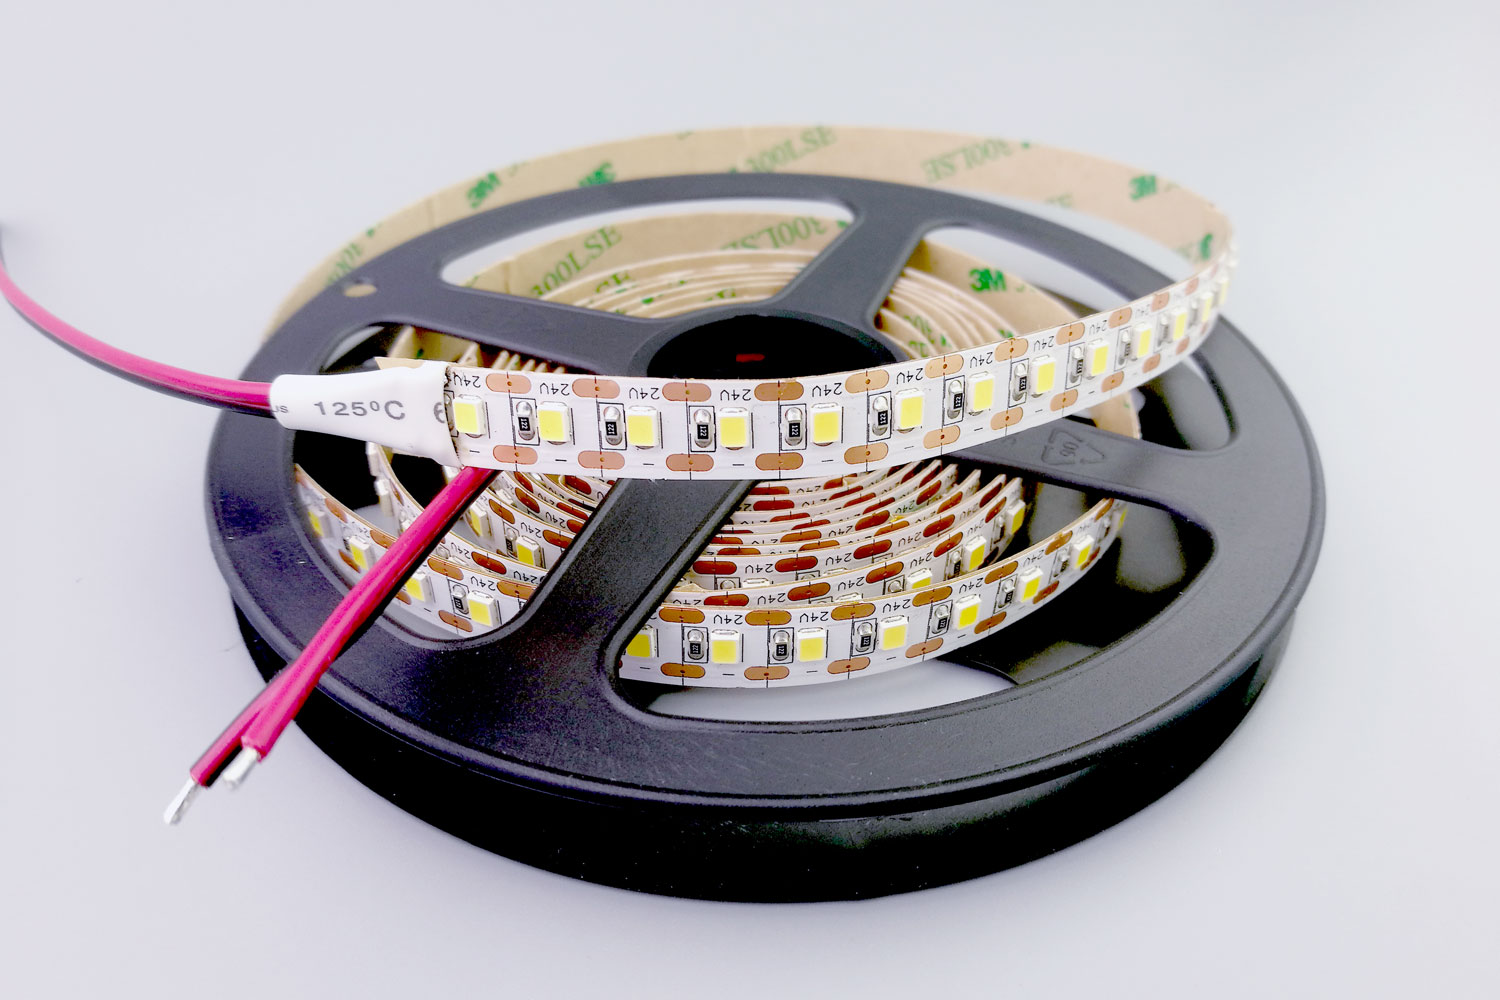 2835 120leds/m 24V White Color Short Unit Cuttable LED Strip Lights